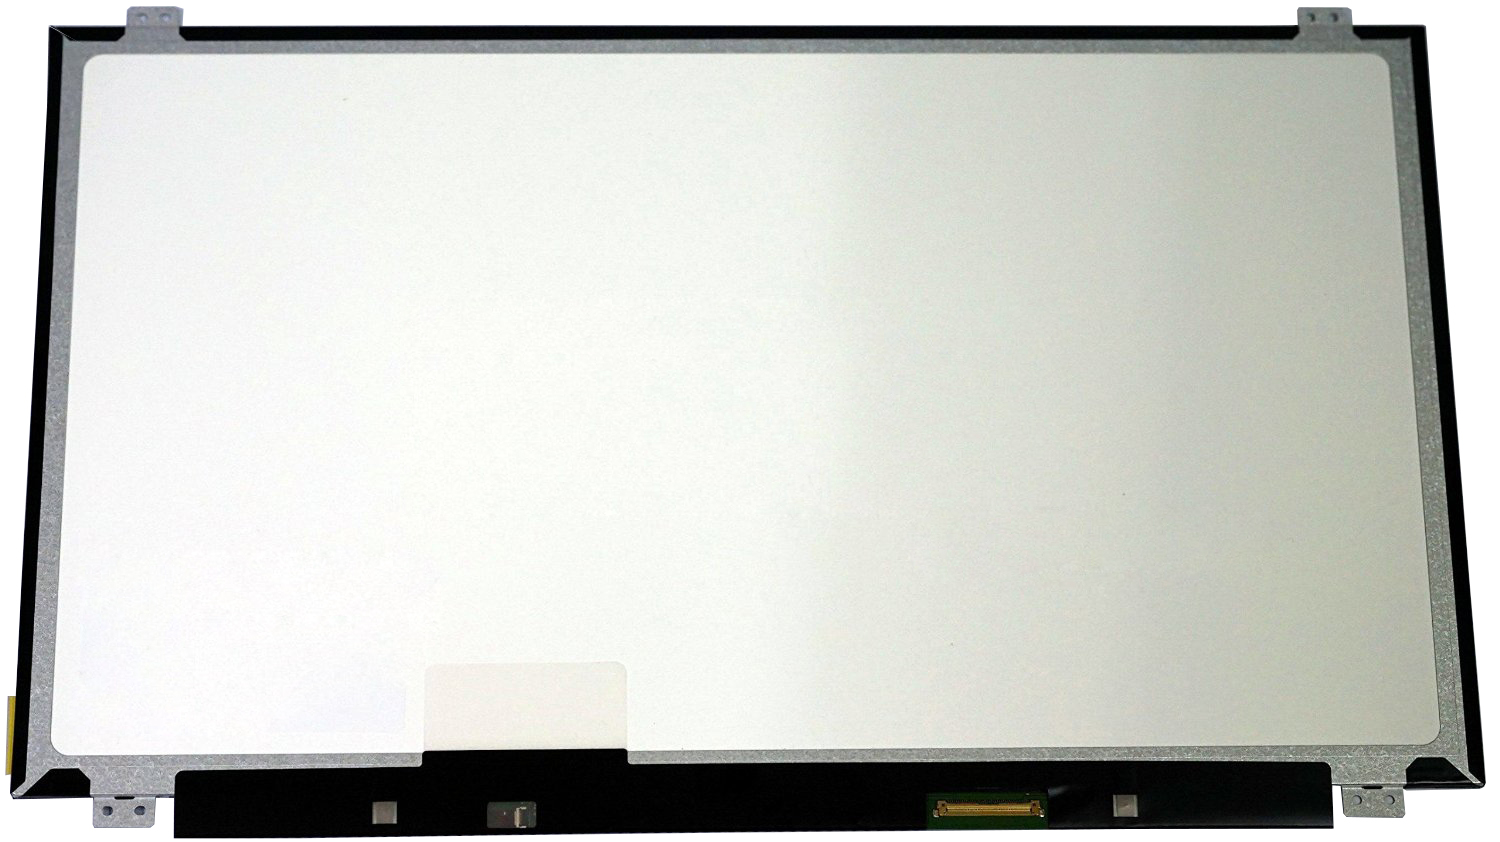 QuYing Laptop LCD Screen for Acer ASPIRE V5-572P V5-573G V5-571PG V7-581 V5-552P V5-573P E5-532T SERIES(15.6 1366x768 30pin) alocs cs b05 aluminum alloy 9 piece wind screen windshield stove fender board for outdoor camping season serial